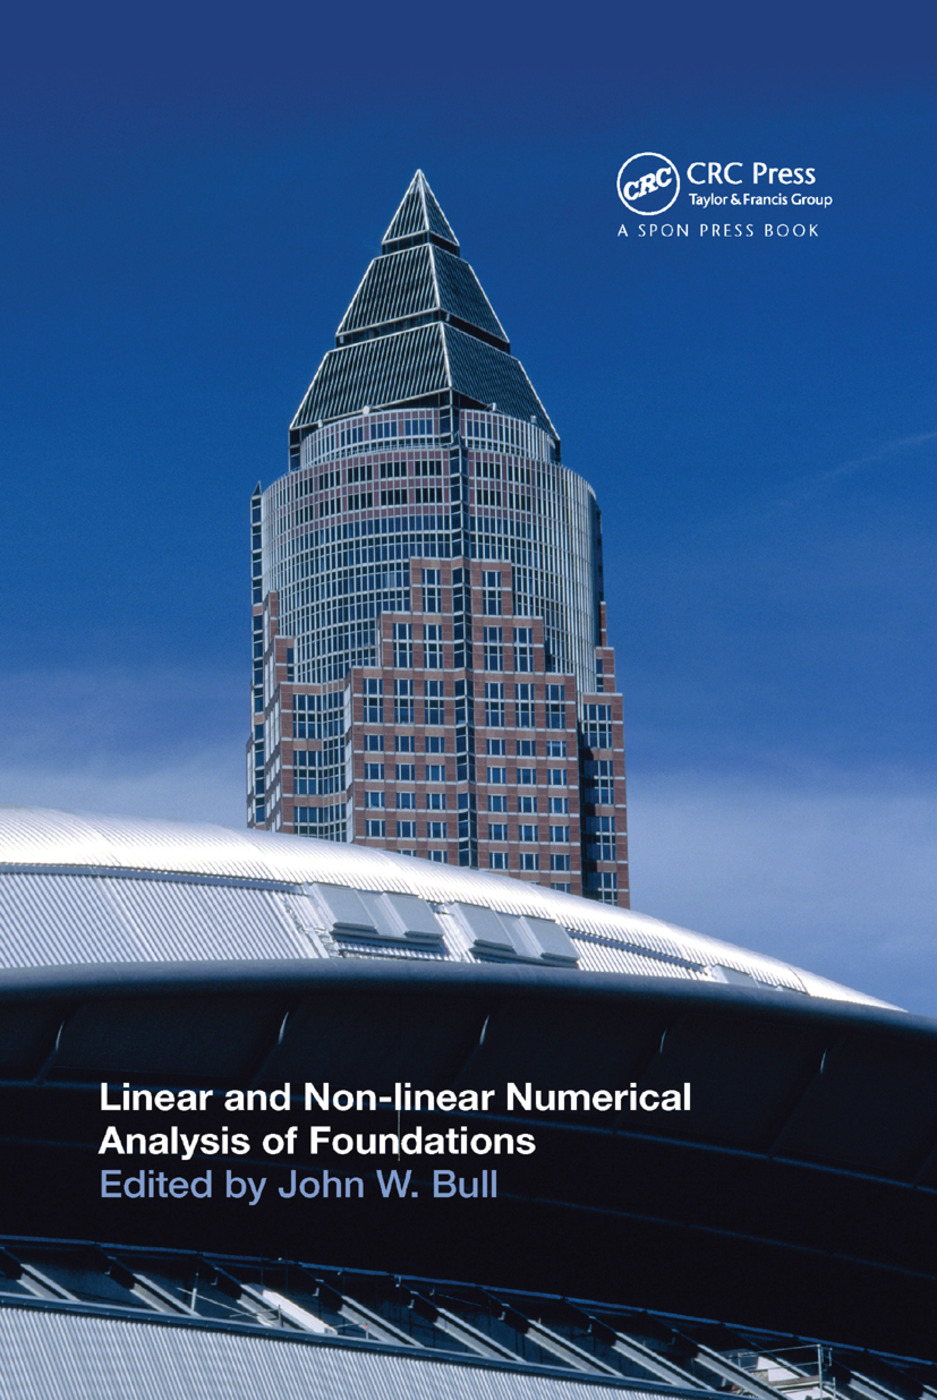 Linear and Non-linear Numerical Analysis of Foundations